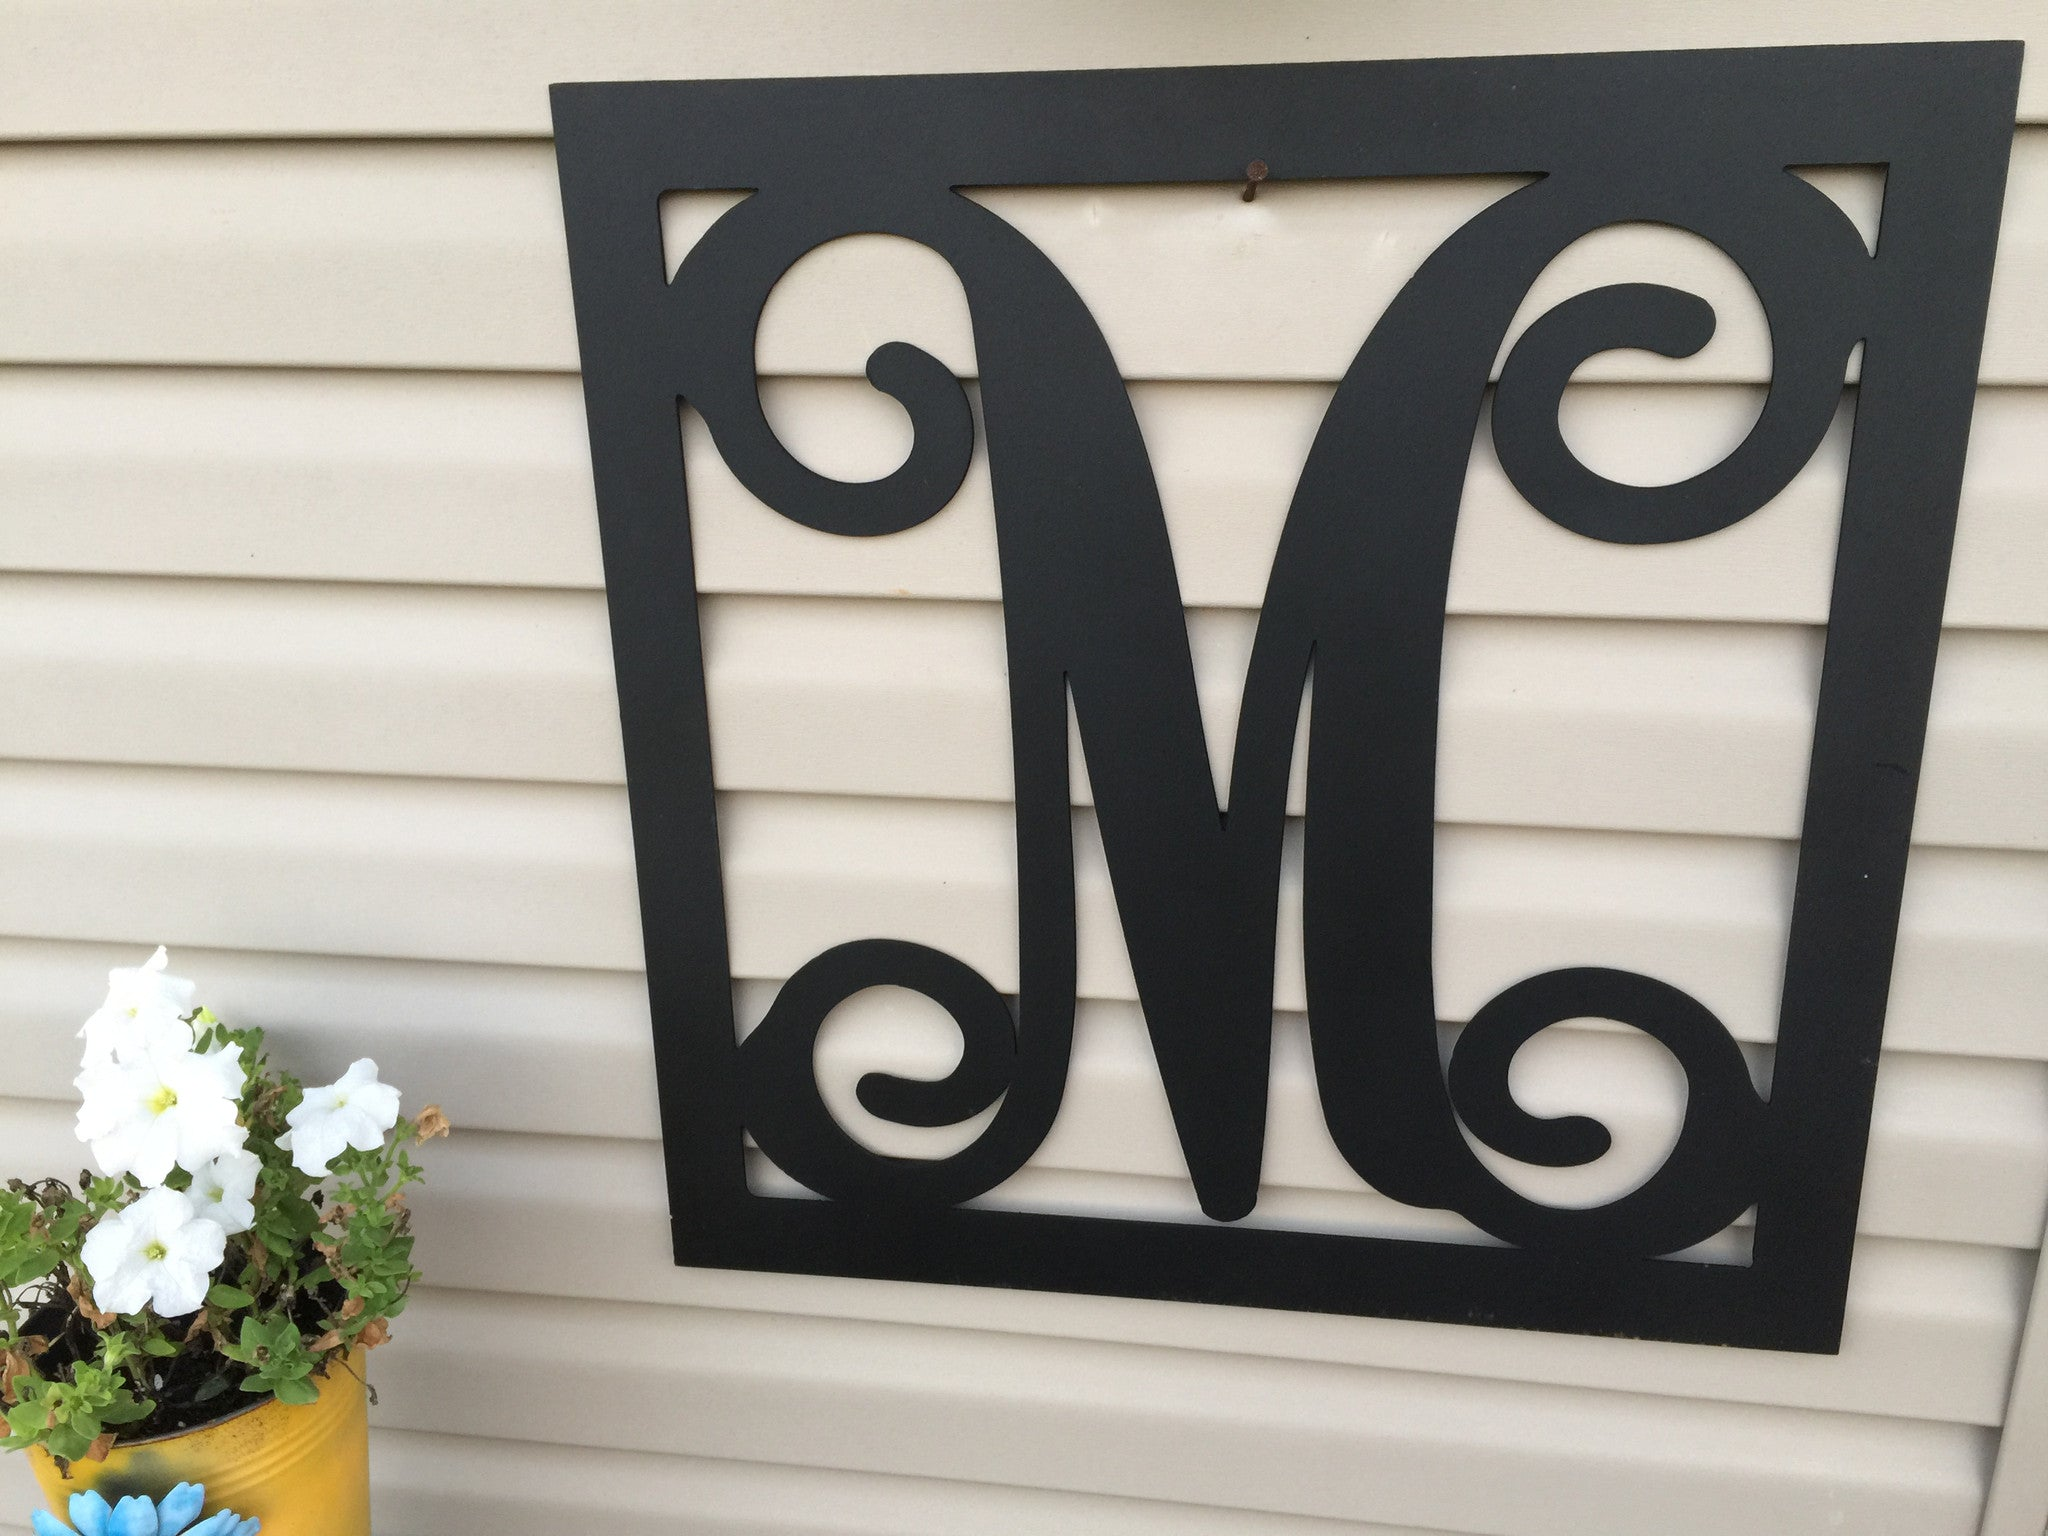 ''Metal Mogram Square with custom letter